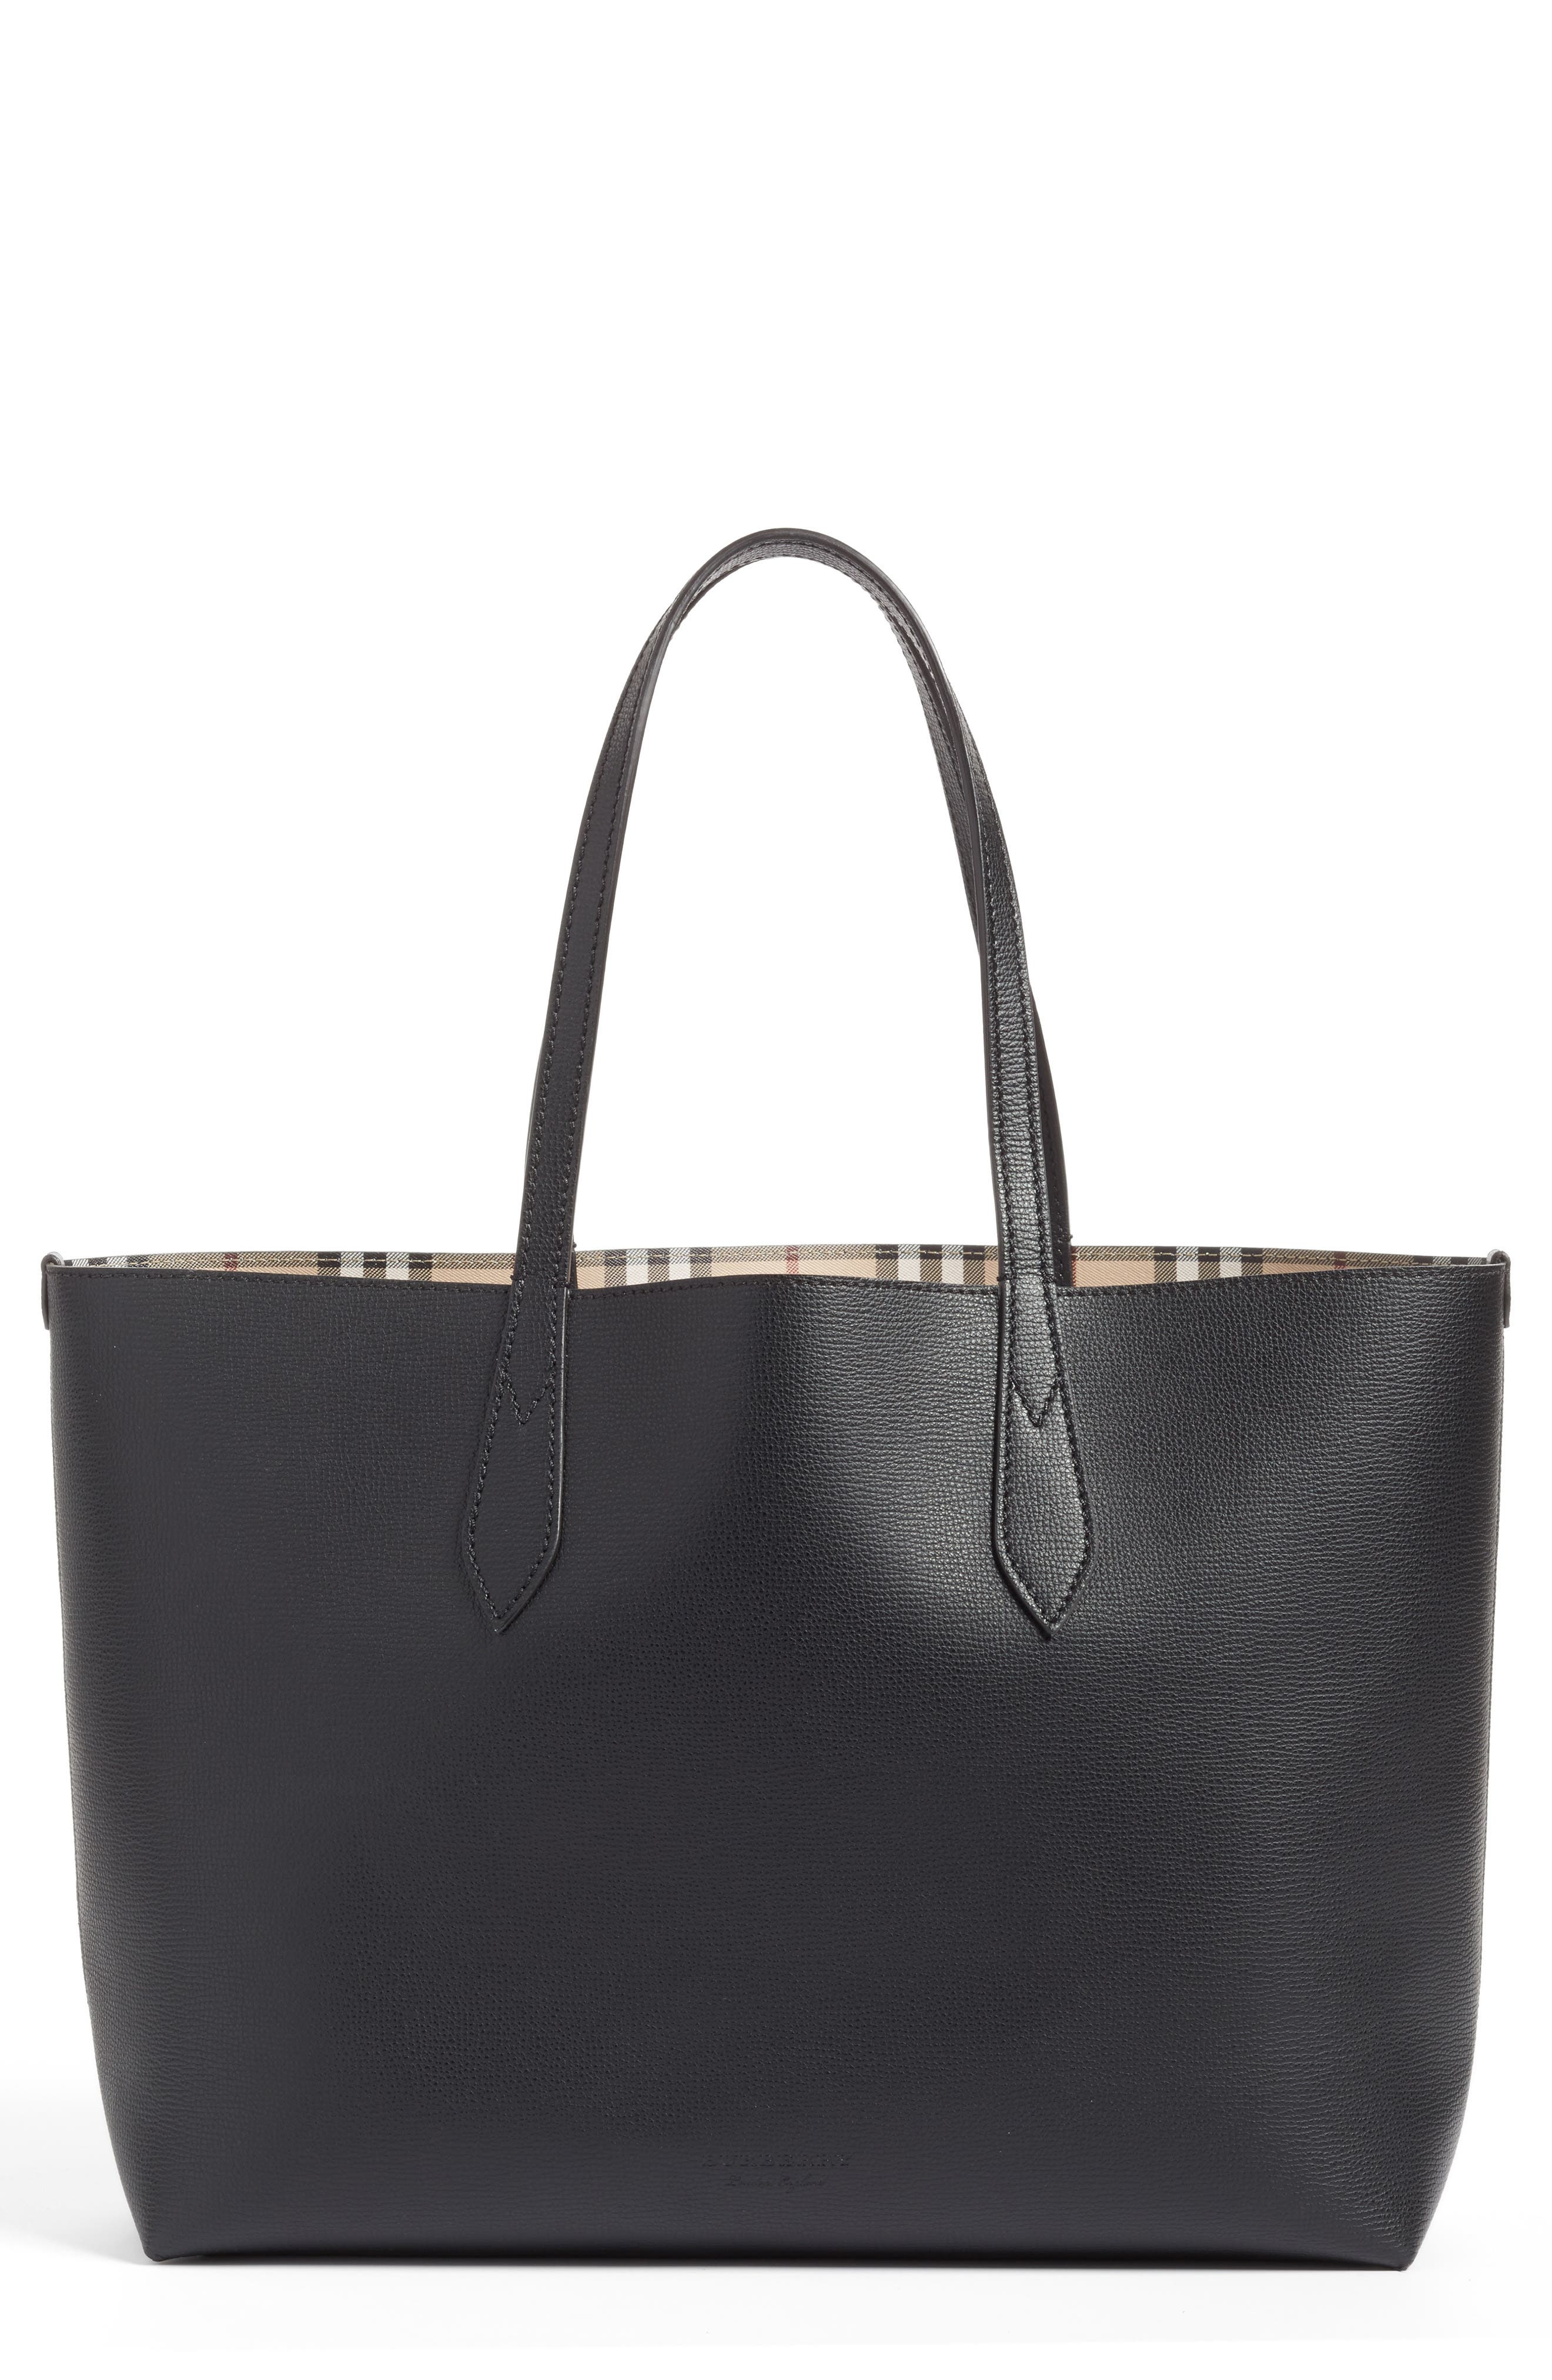 Medium Lavenby Reversible Calfskin Leather Tote,                         Main,                         color, 001